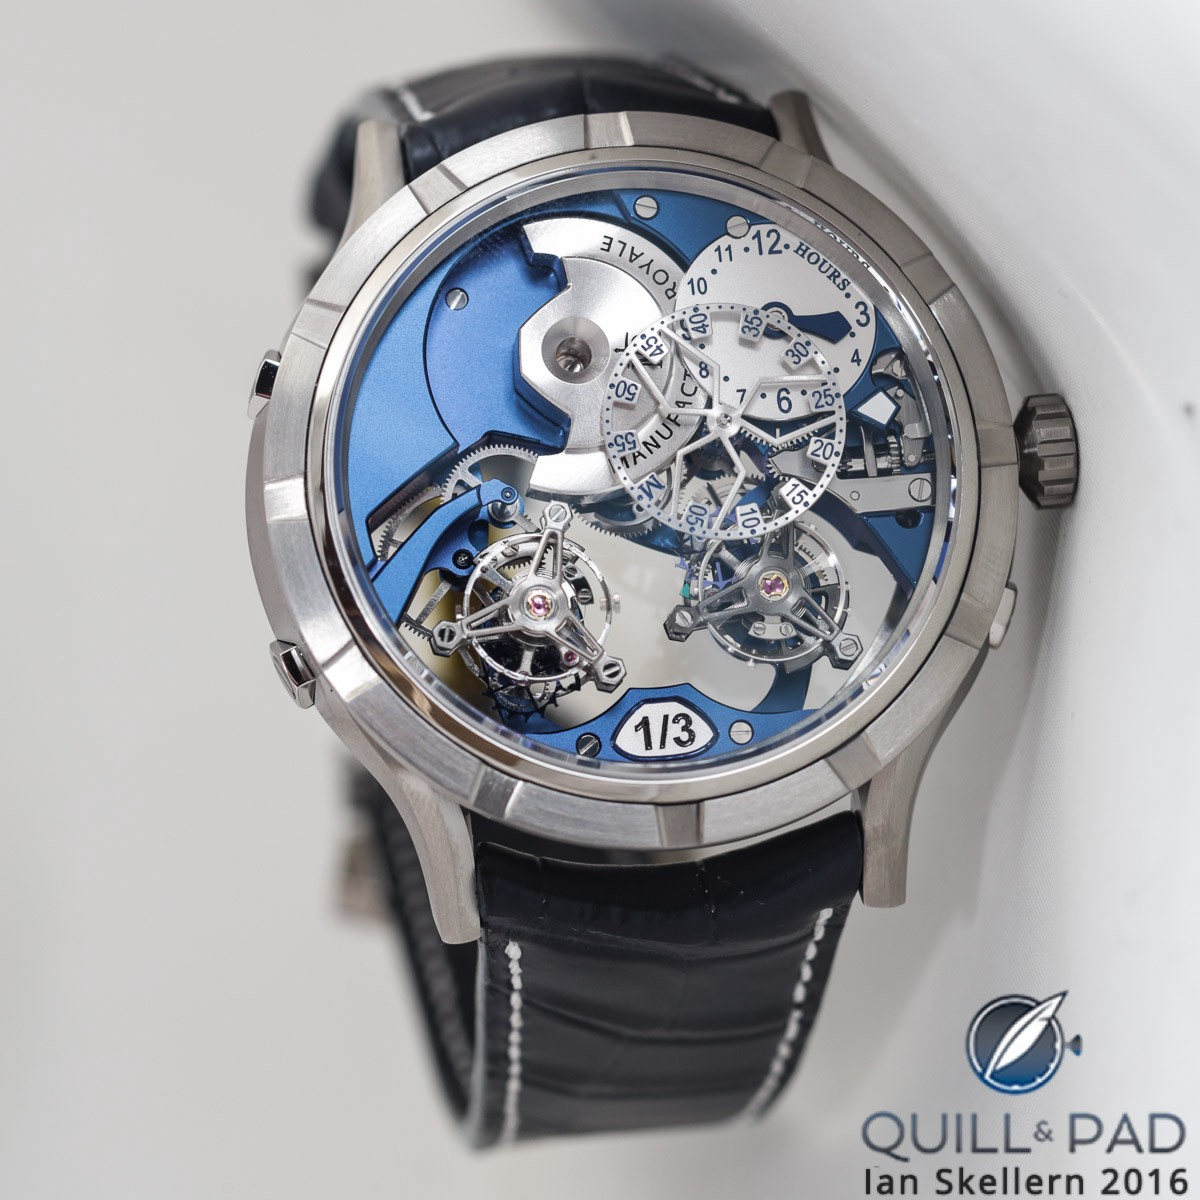 Manufacture Royale 1770 Micromégas Revolution in titanium with blue movement